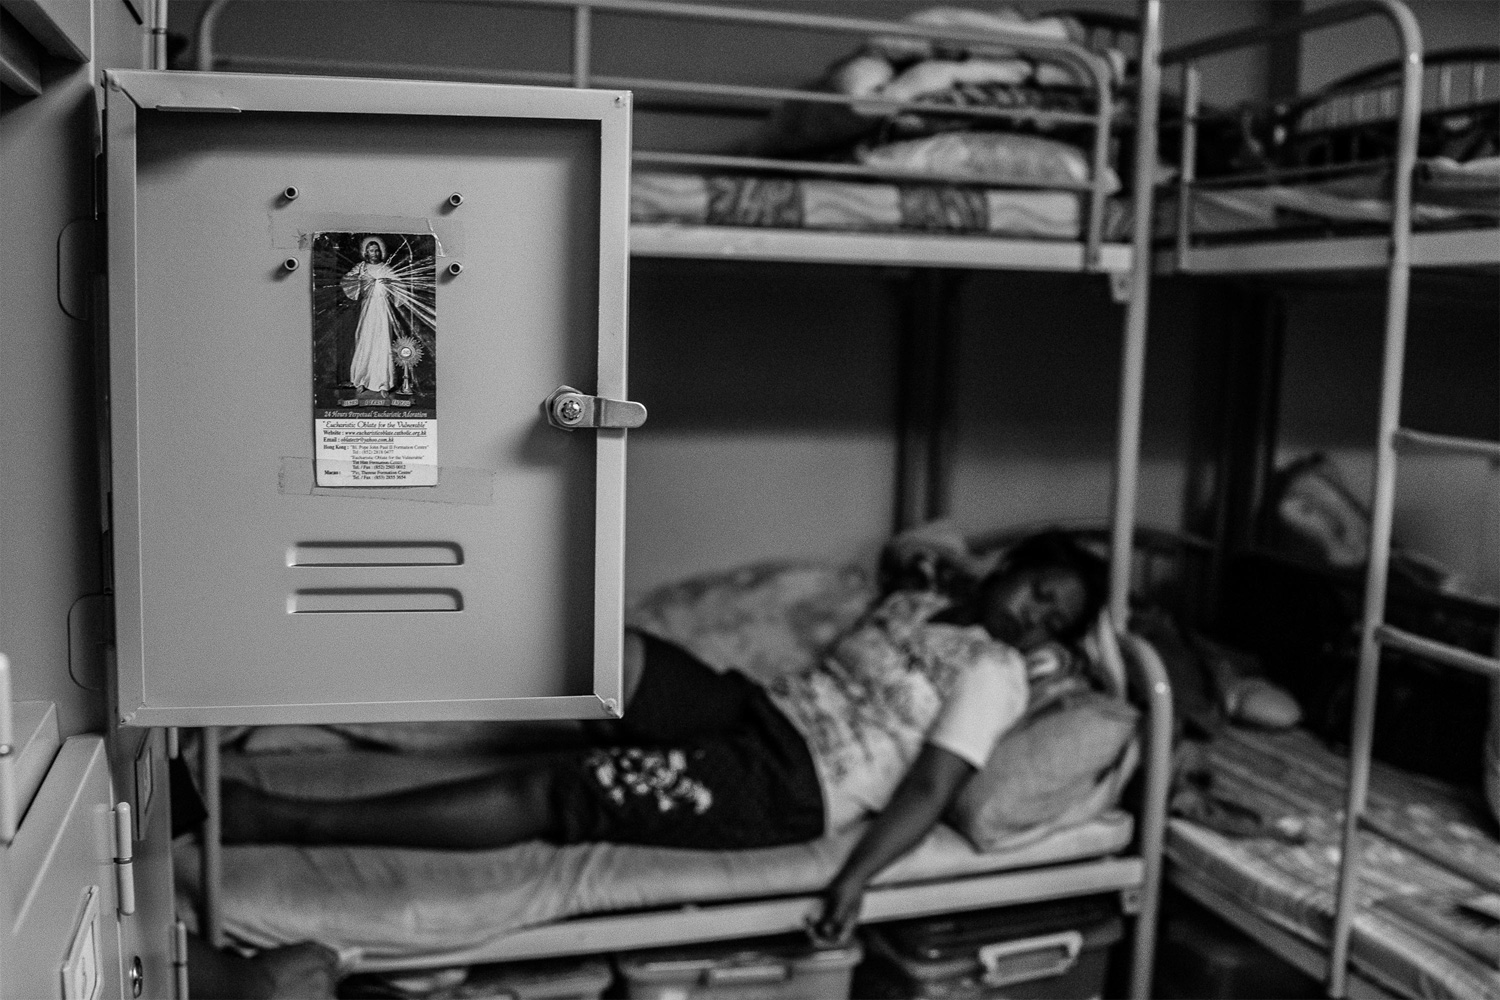 An image of Jesus Christ adorns a resident's locker as Sunarwi, an Indonesian domestic worker, rests after spending a day in court. She was accused of stealing 150 Canadian dollars from her former employer. Following a trial, a court later found Sunarwi guilty and sentenced her to a three-month prison term. Once foreign domestic workers have been sentenced and served out their jail terms, they are often deported and barred from returning to Hong Kong.